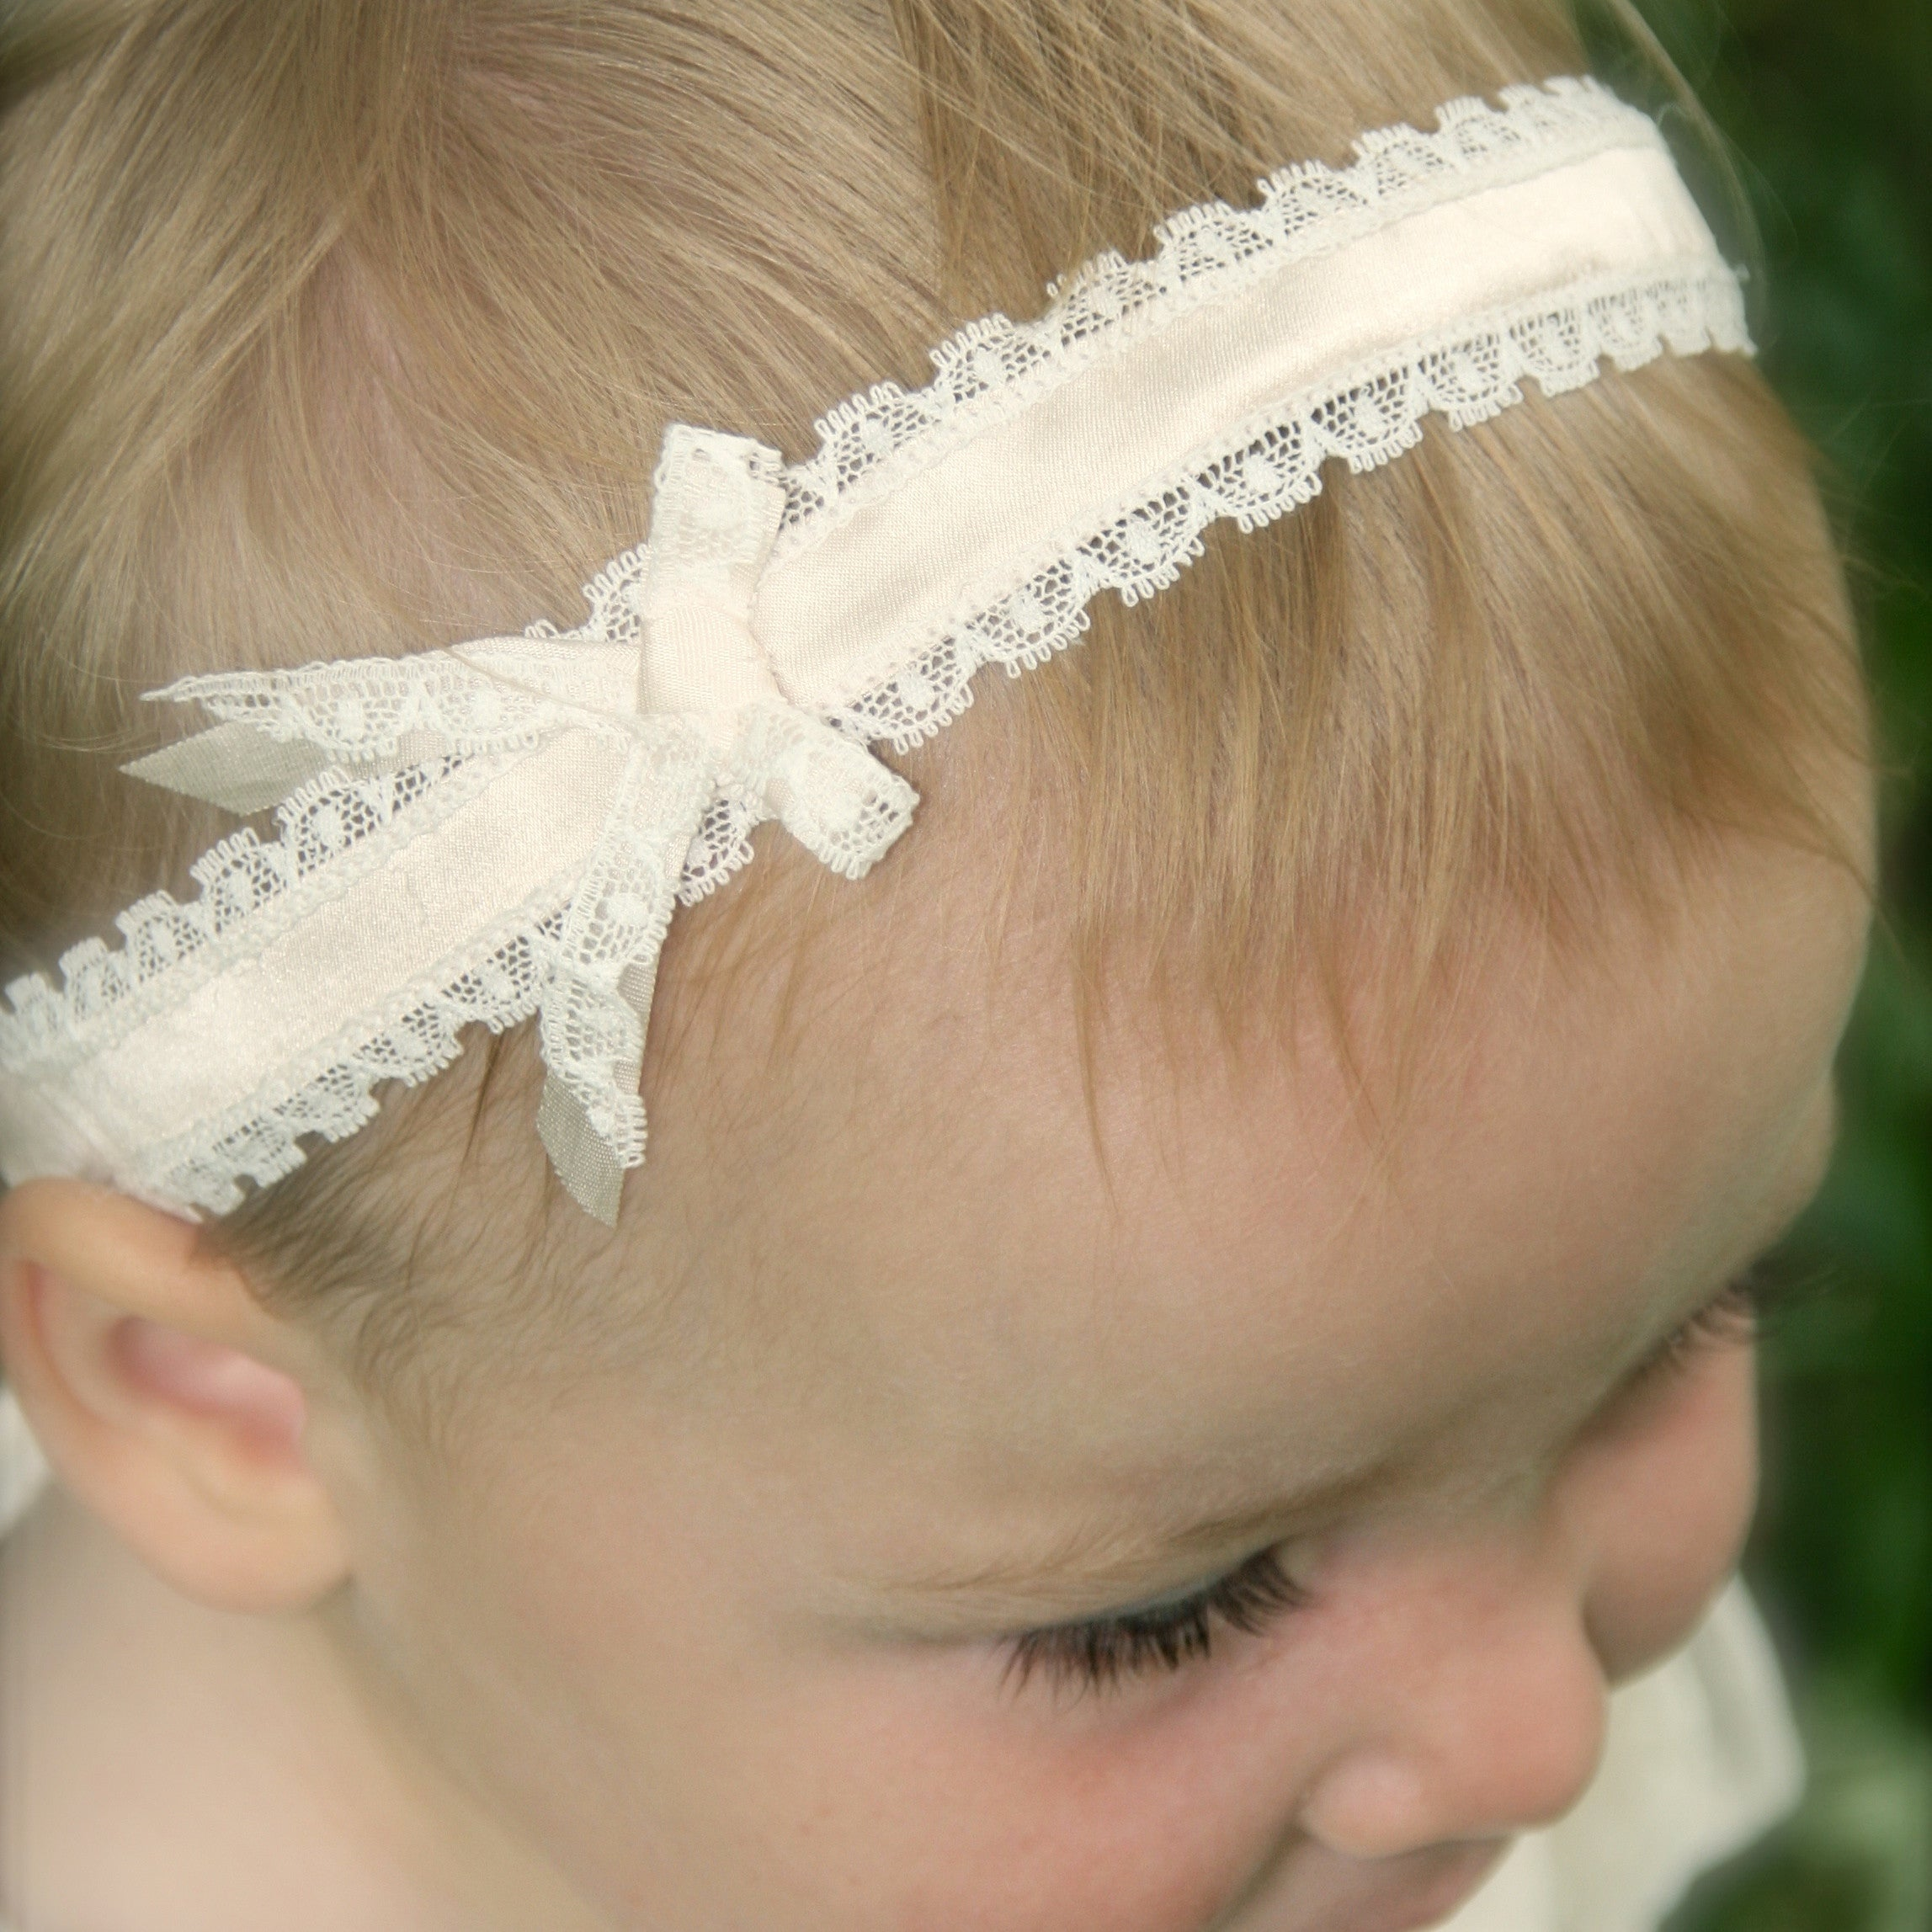 Darcy Silk baby Headband, Christening headband, Lace Baby Headband, Toddler Silk headband, Baby Headbands